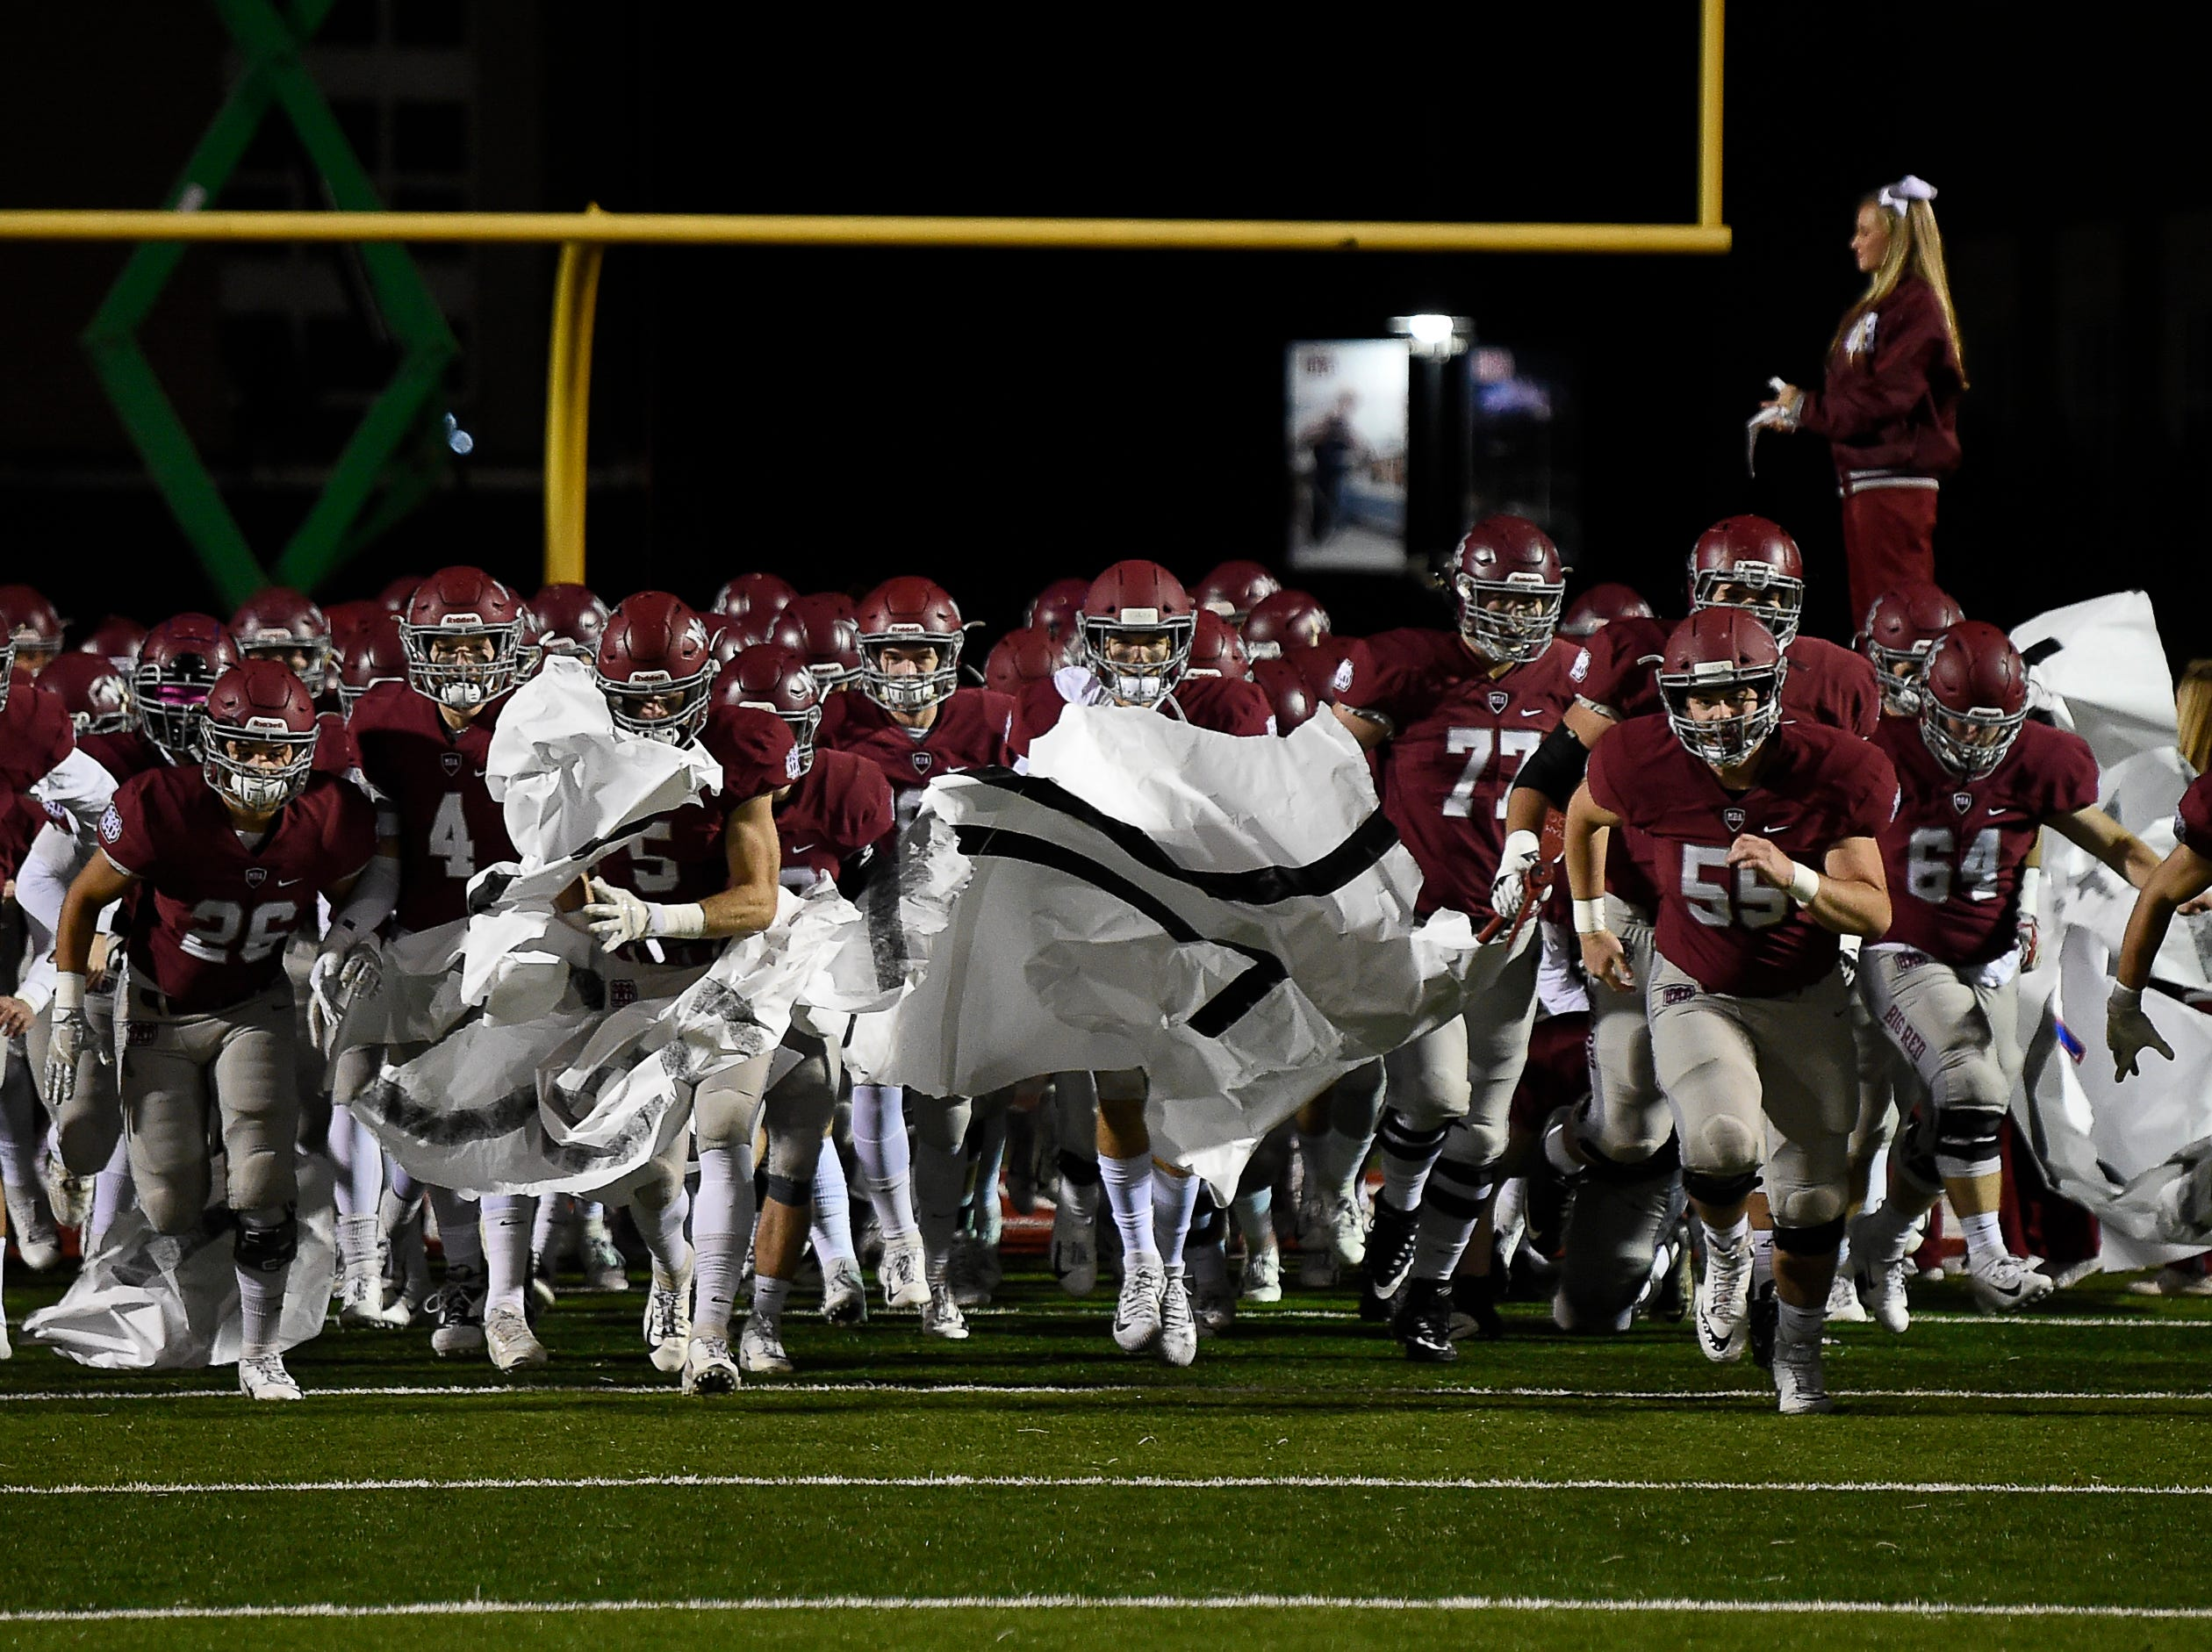 MBA takes the field for their 2018 Division II Class AAA State Football Playoff game against Brentwood Academy at Montgomery Bell Academy Friday, Nov. 16, 2018, in Nashville, Tenn.